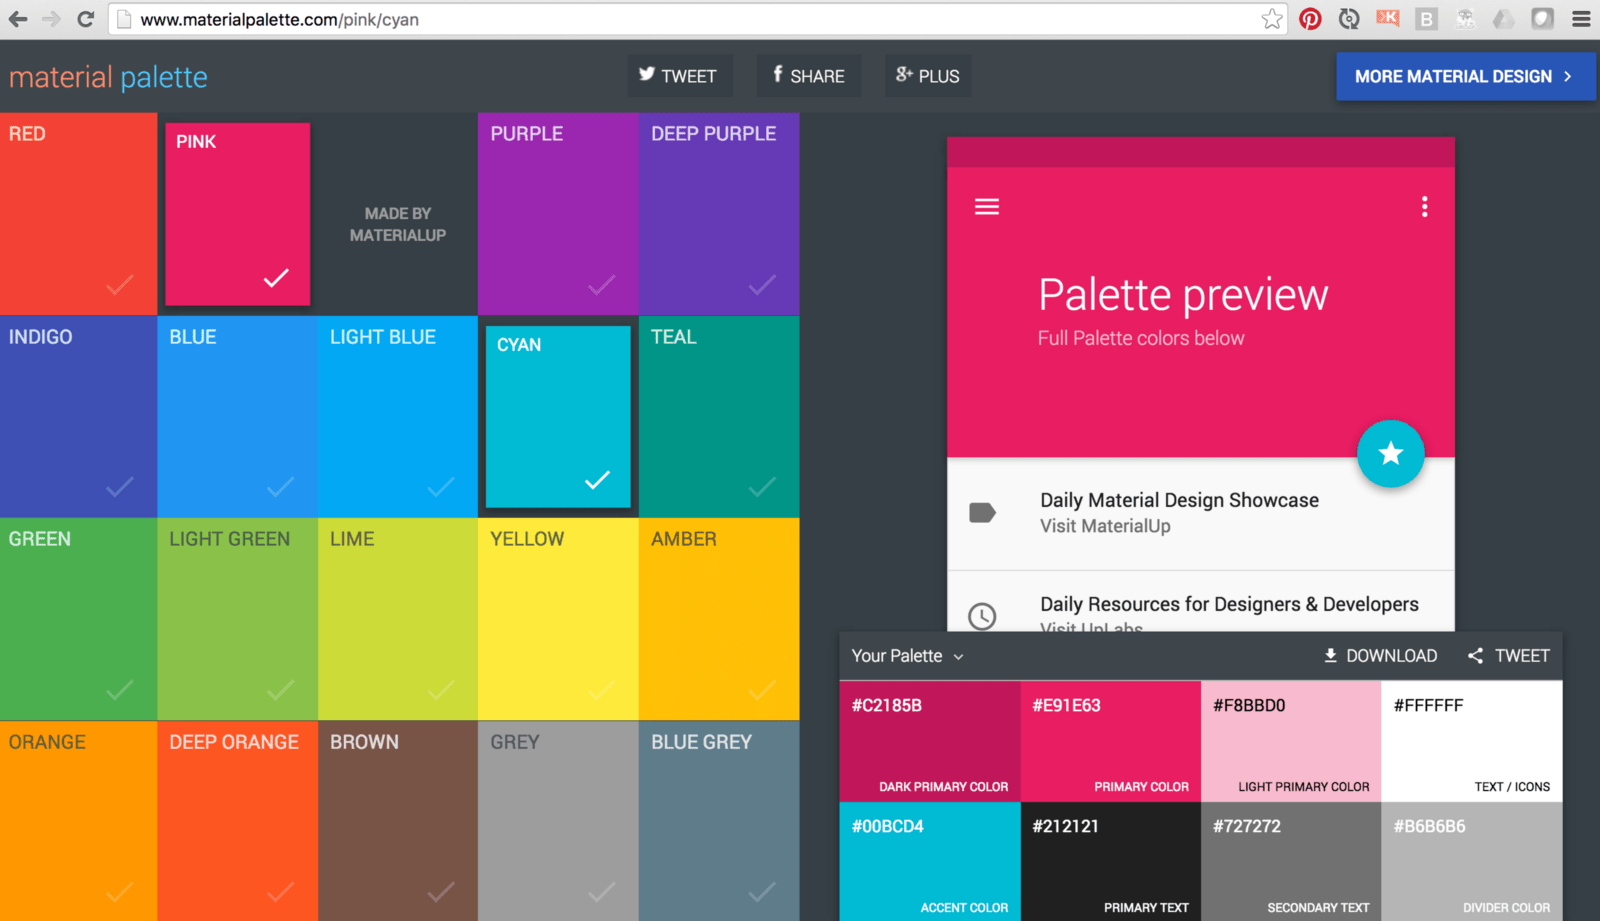 Paletten Bilder Adding A Material Design Color Palette To Your Angular Material 2 App